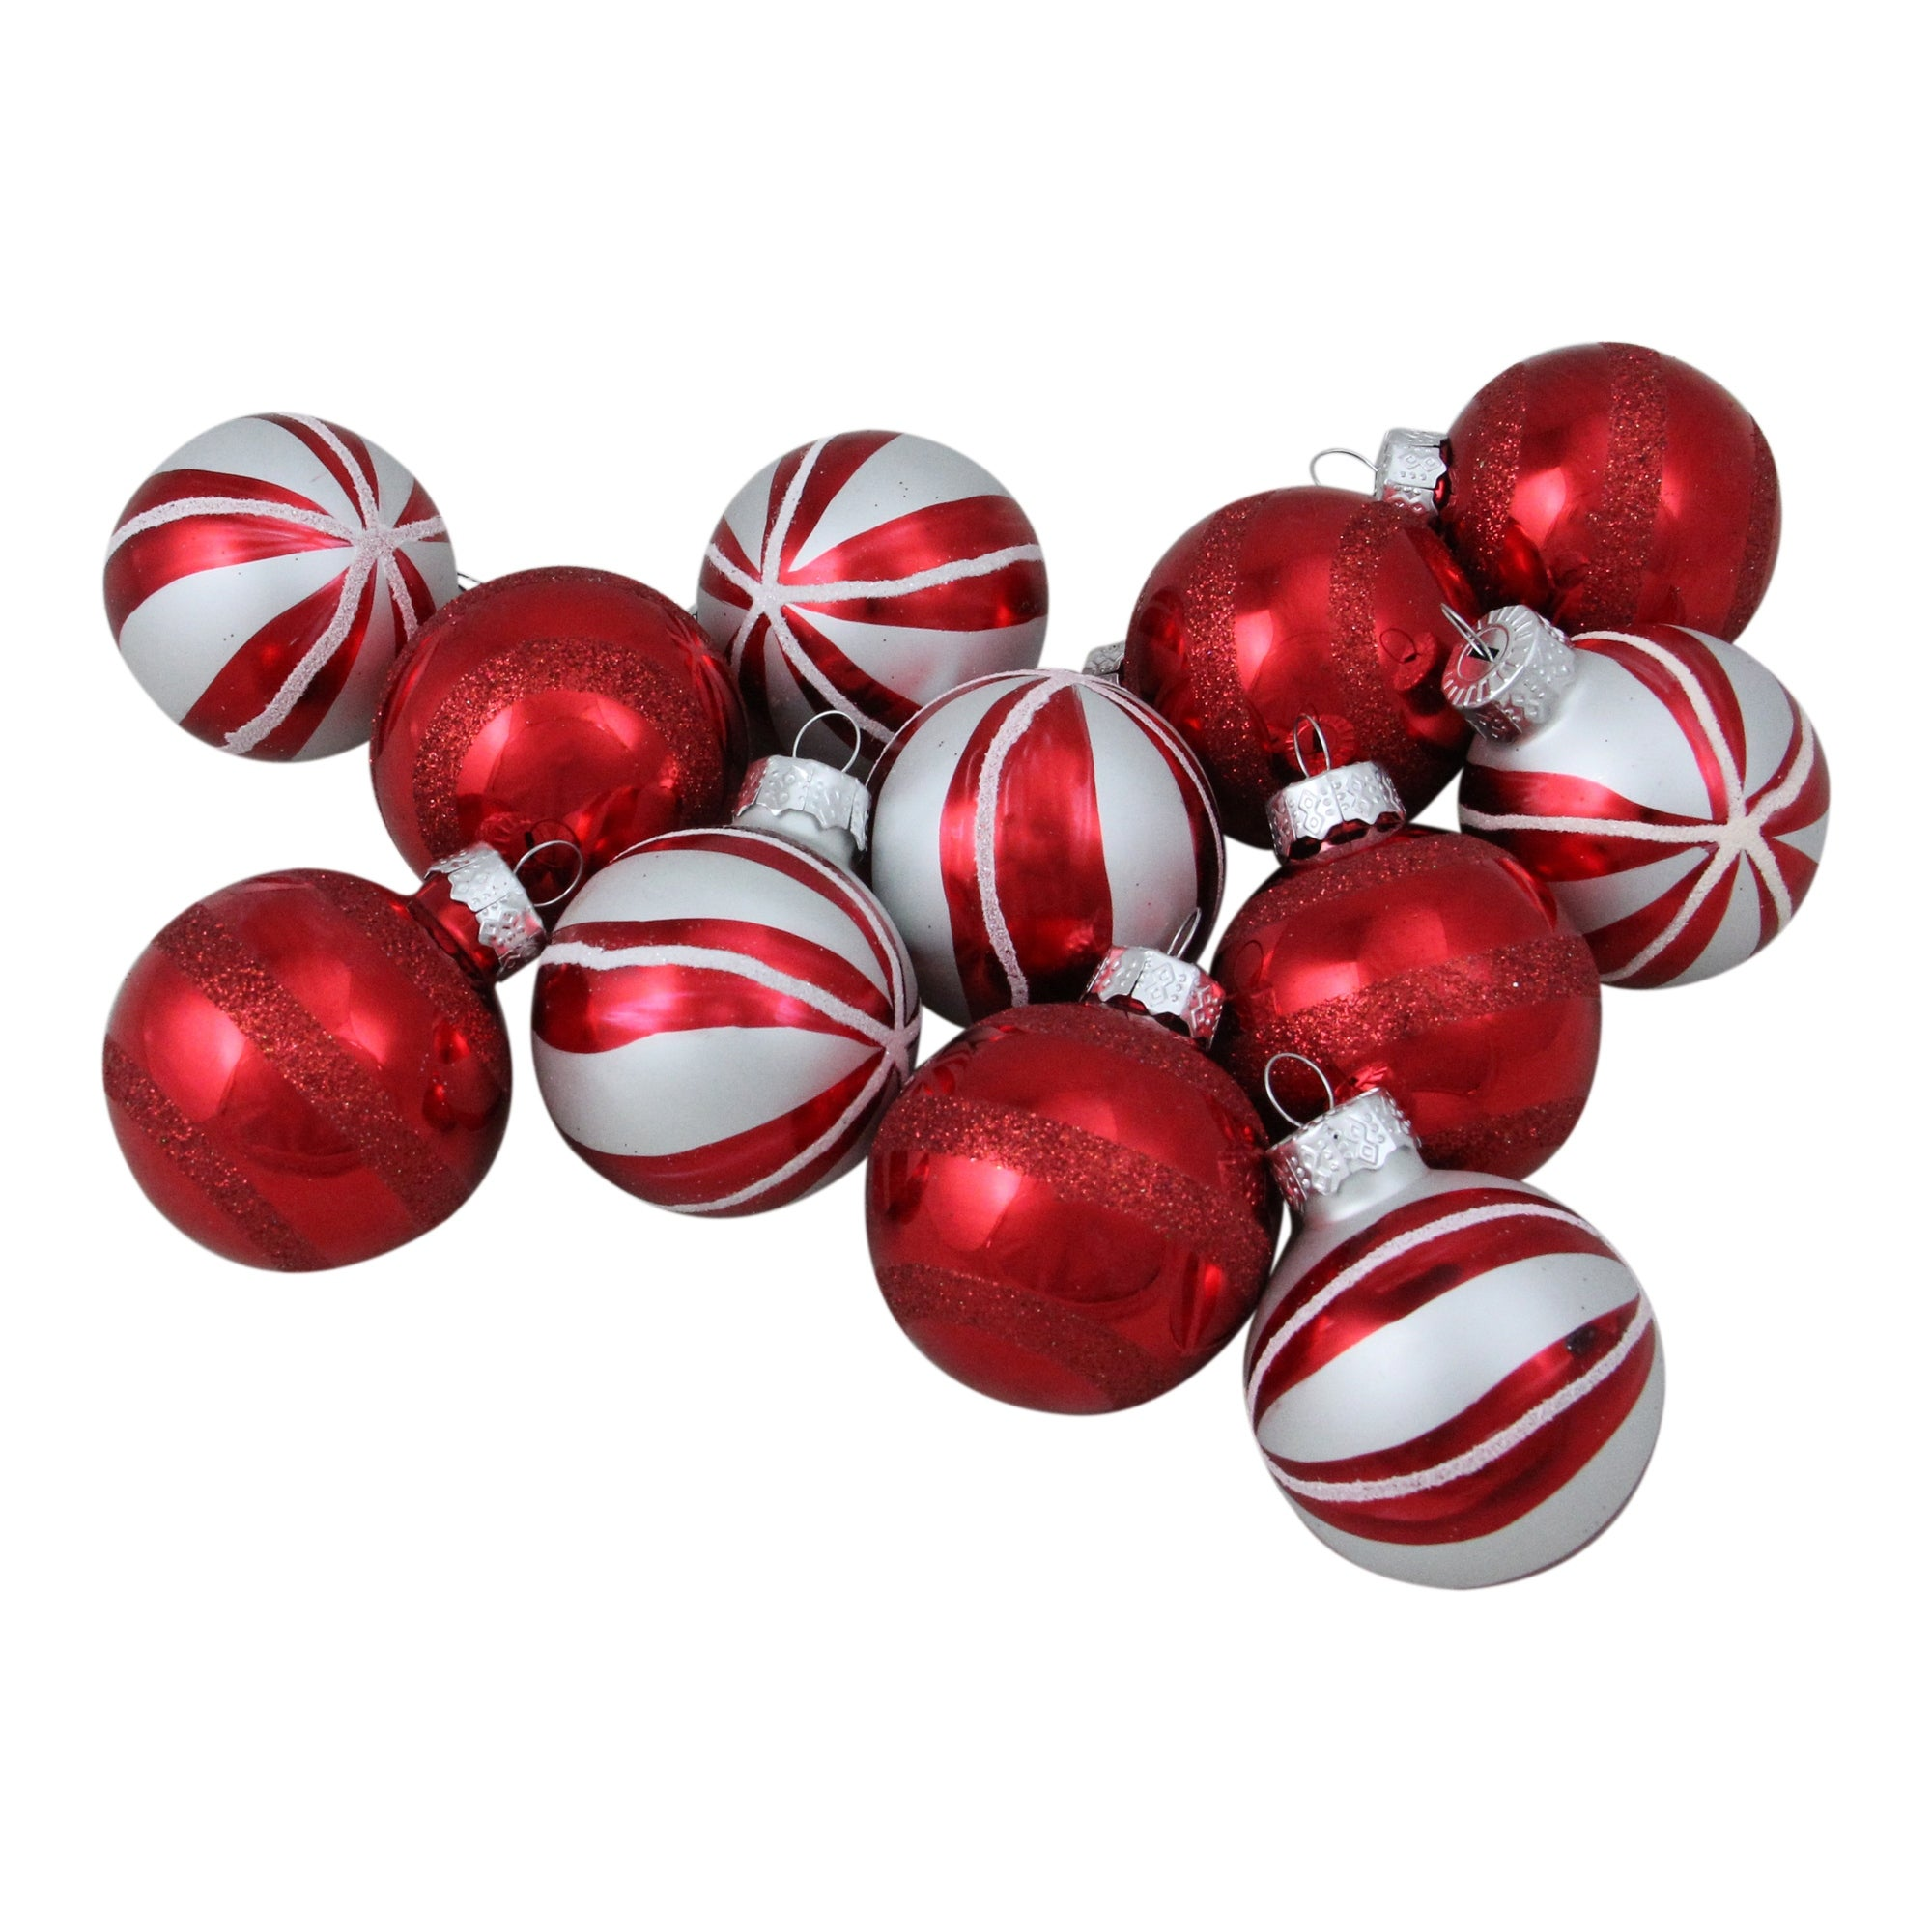 Christmas Ornament Set.12ct Red And White Peppermint Swirl Glass Ball Christmas Ornament Set 1 75 45mm